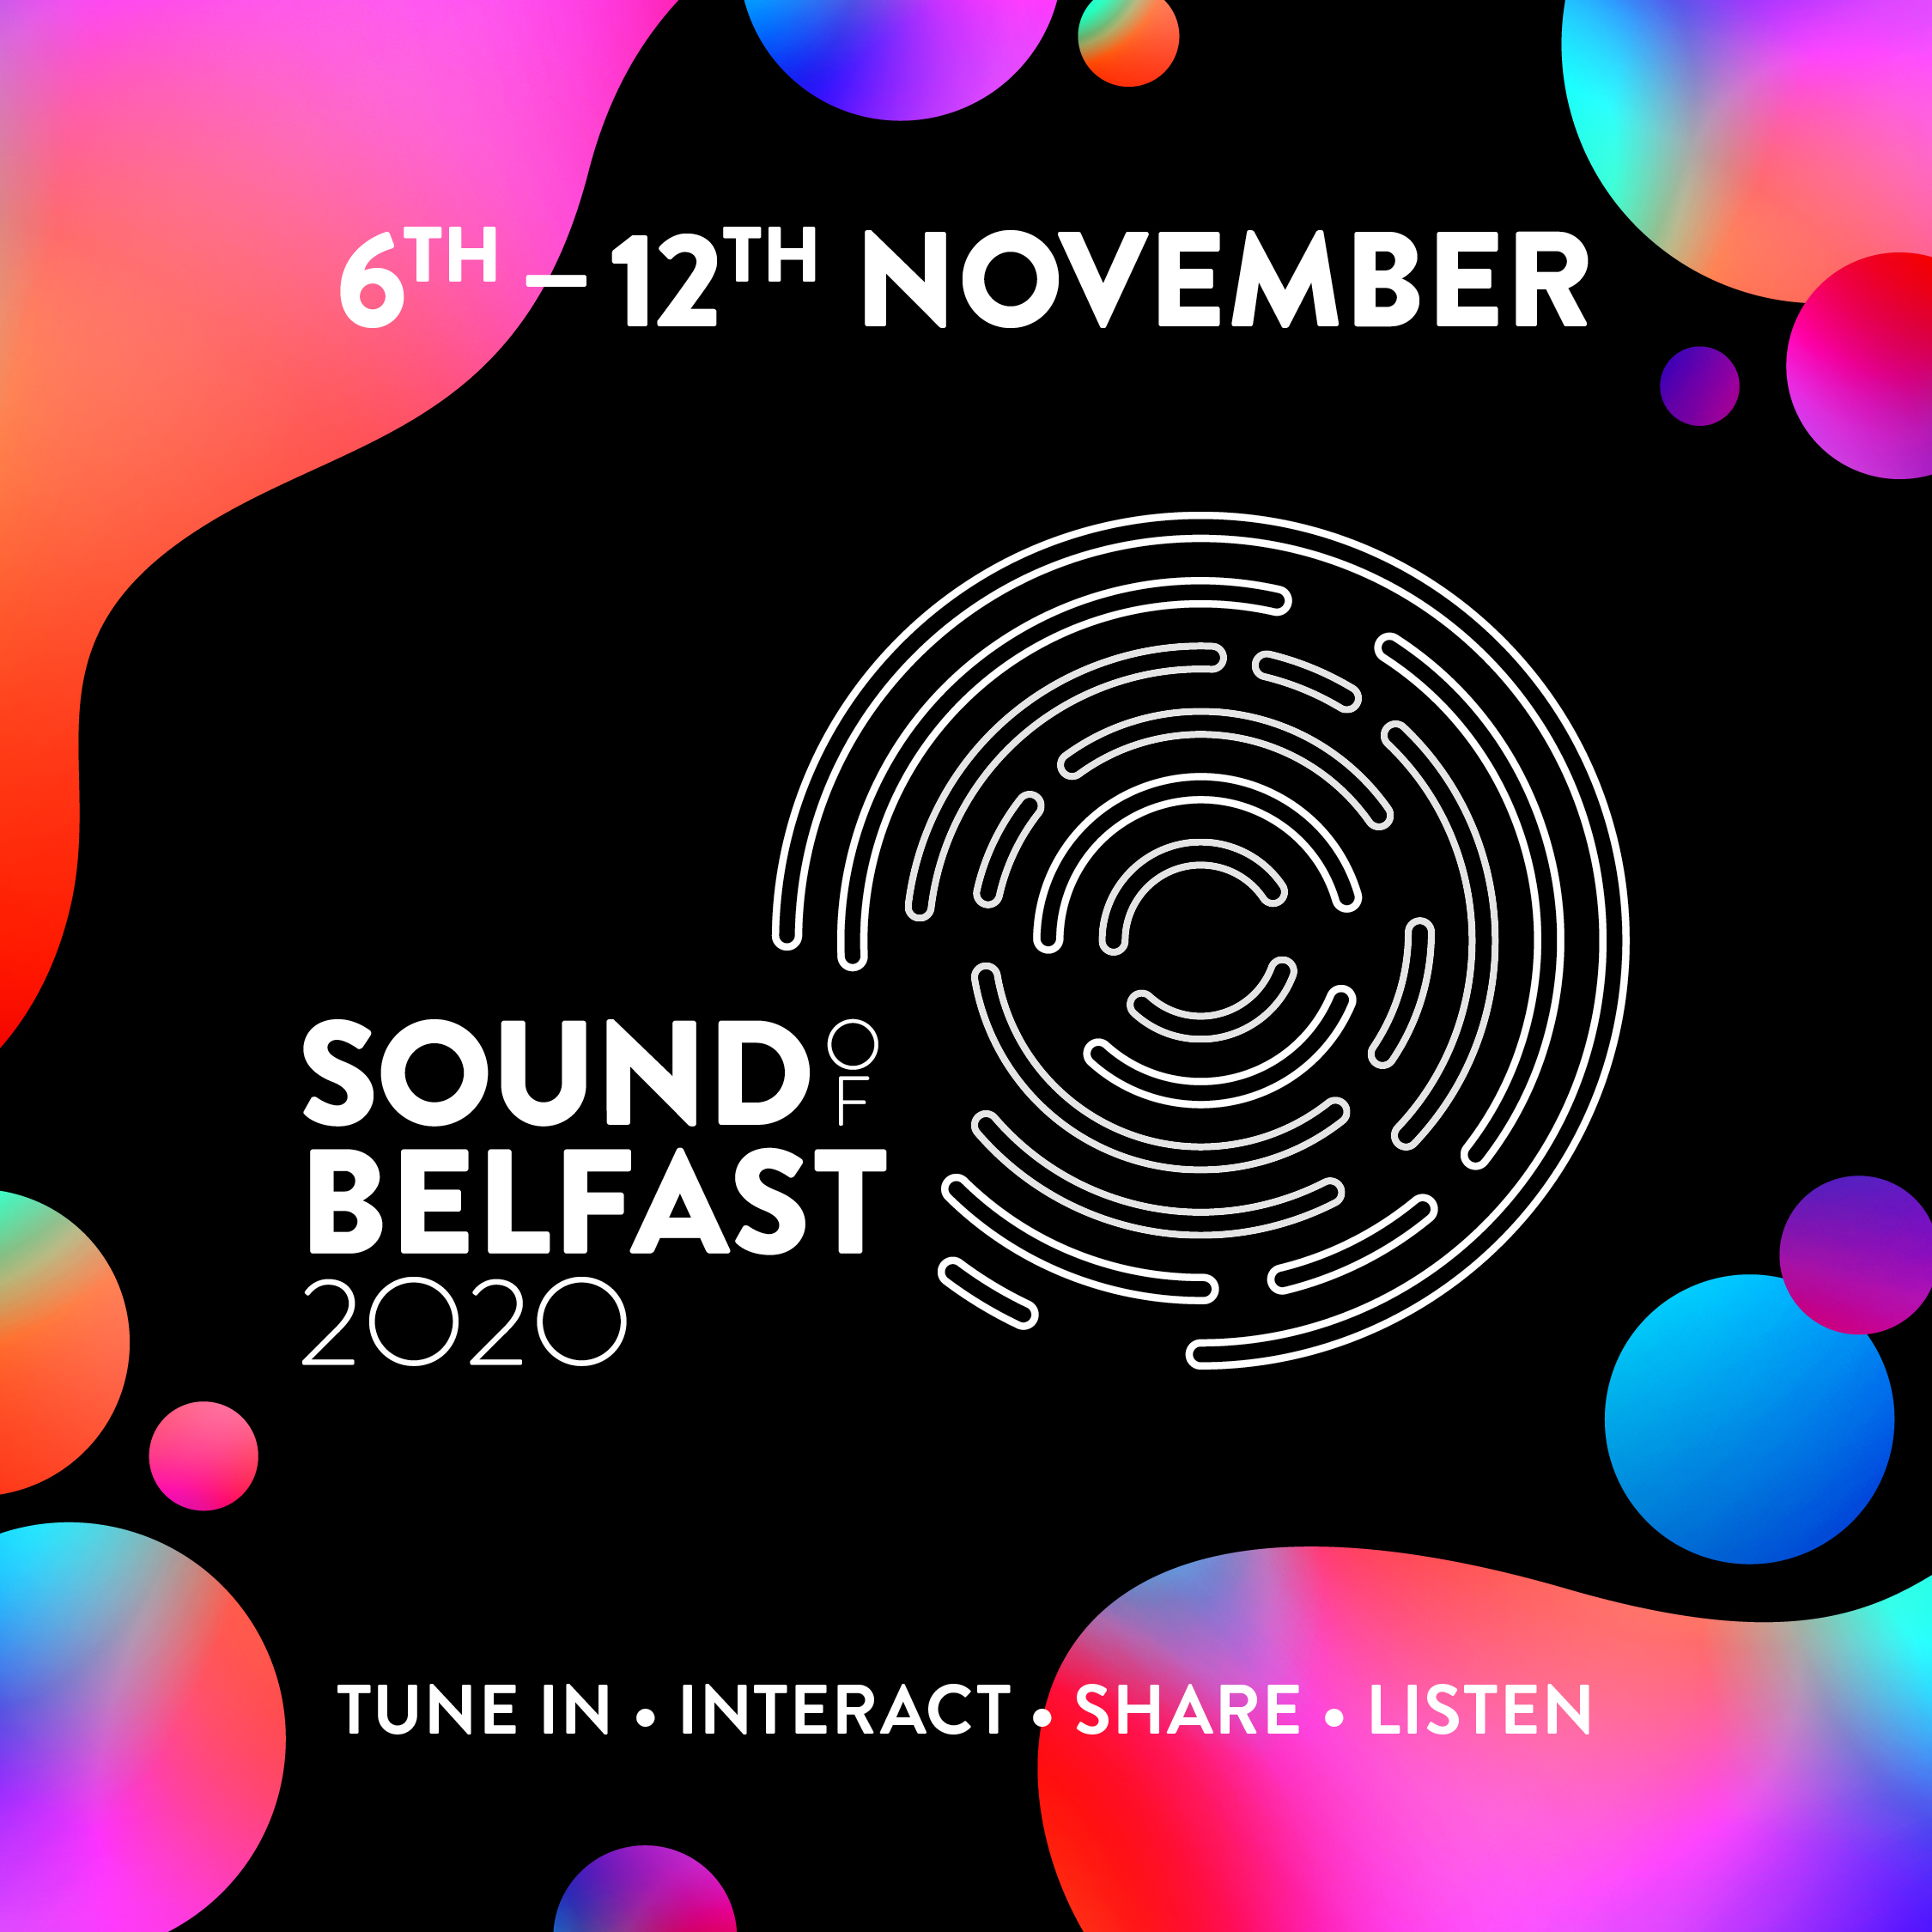 Sound of Belfast Festival 2020